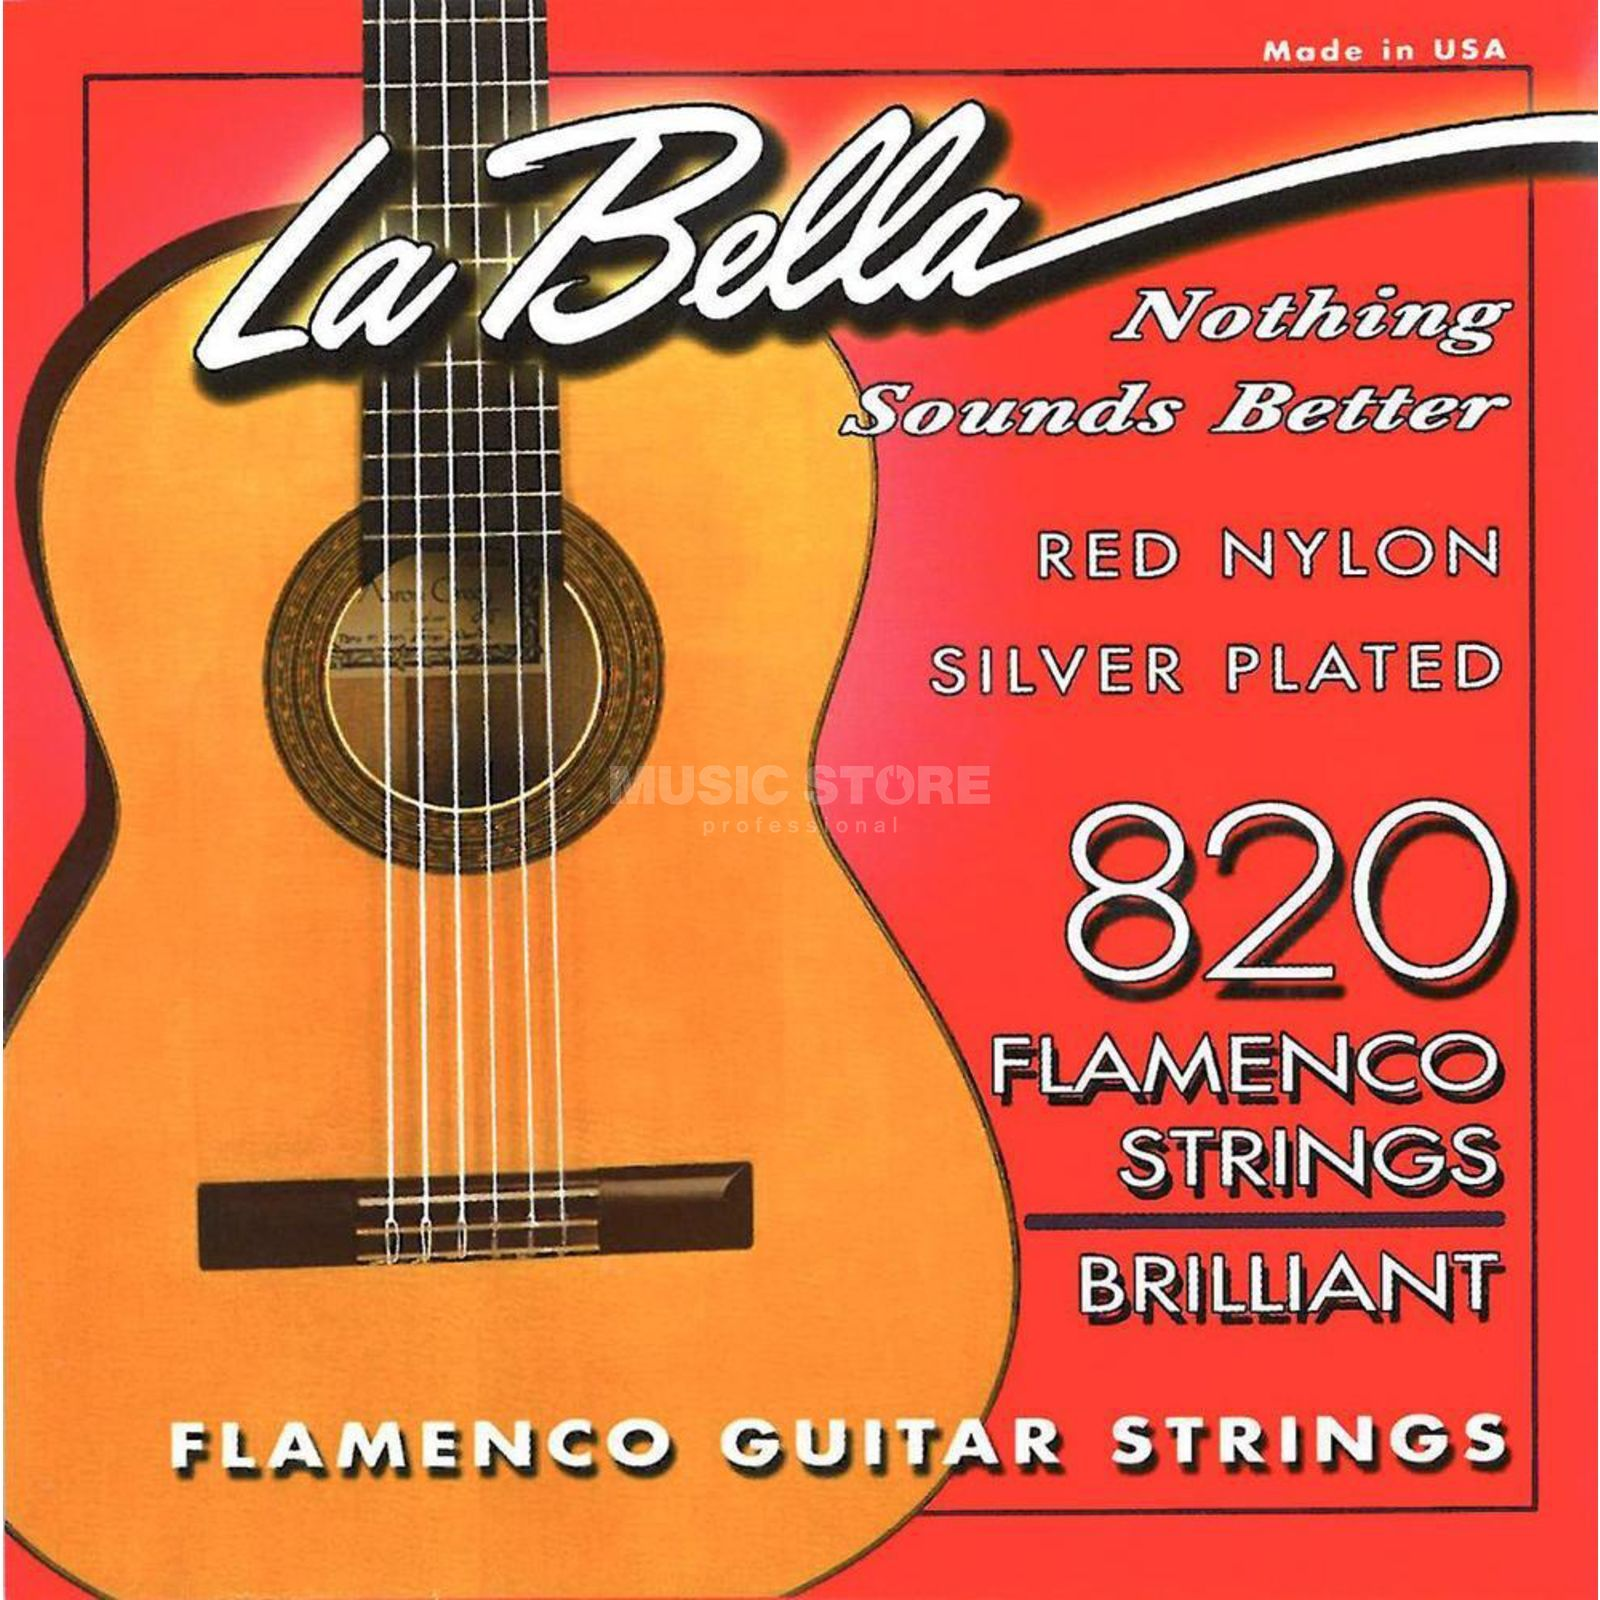 La Bella 820 Nylon Strings Flamenco Red Nylon Silver Produktbillede